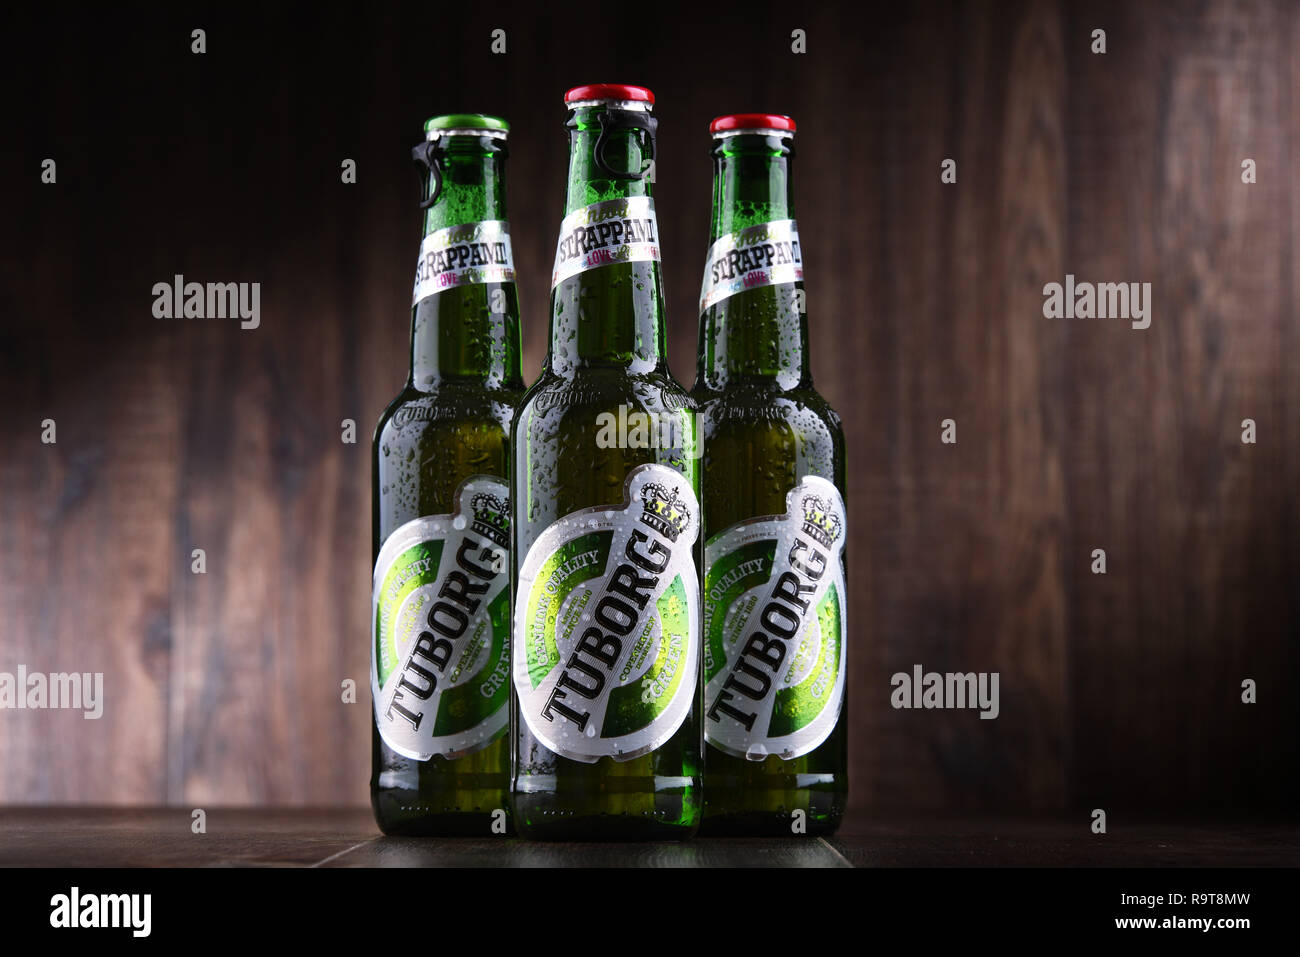 e3a1df7cd871 Tuborg Stock Photos   Tuborg Stock Images - Page 2 - Alamy